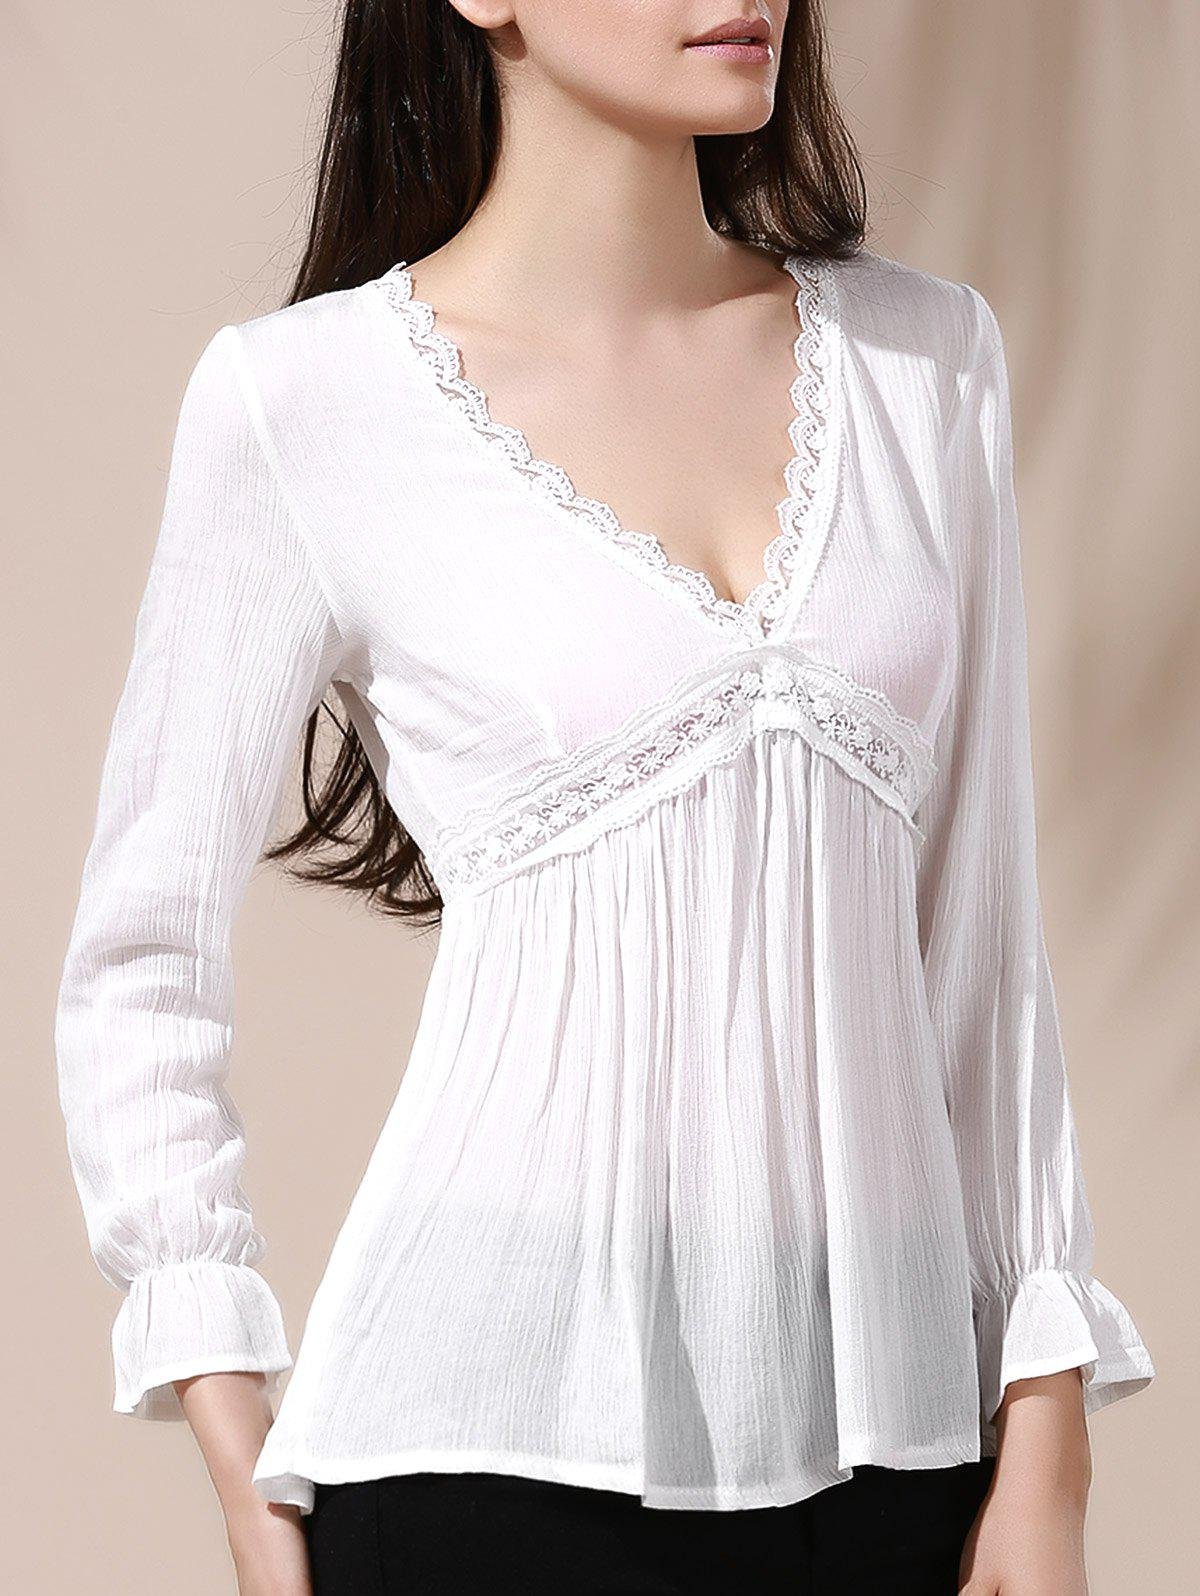 Blouse With Lace Trim For Women - WHITE XL